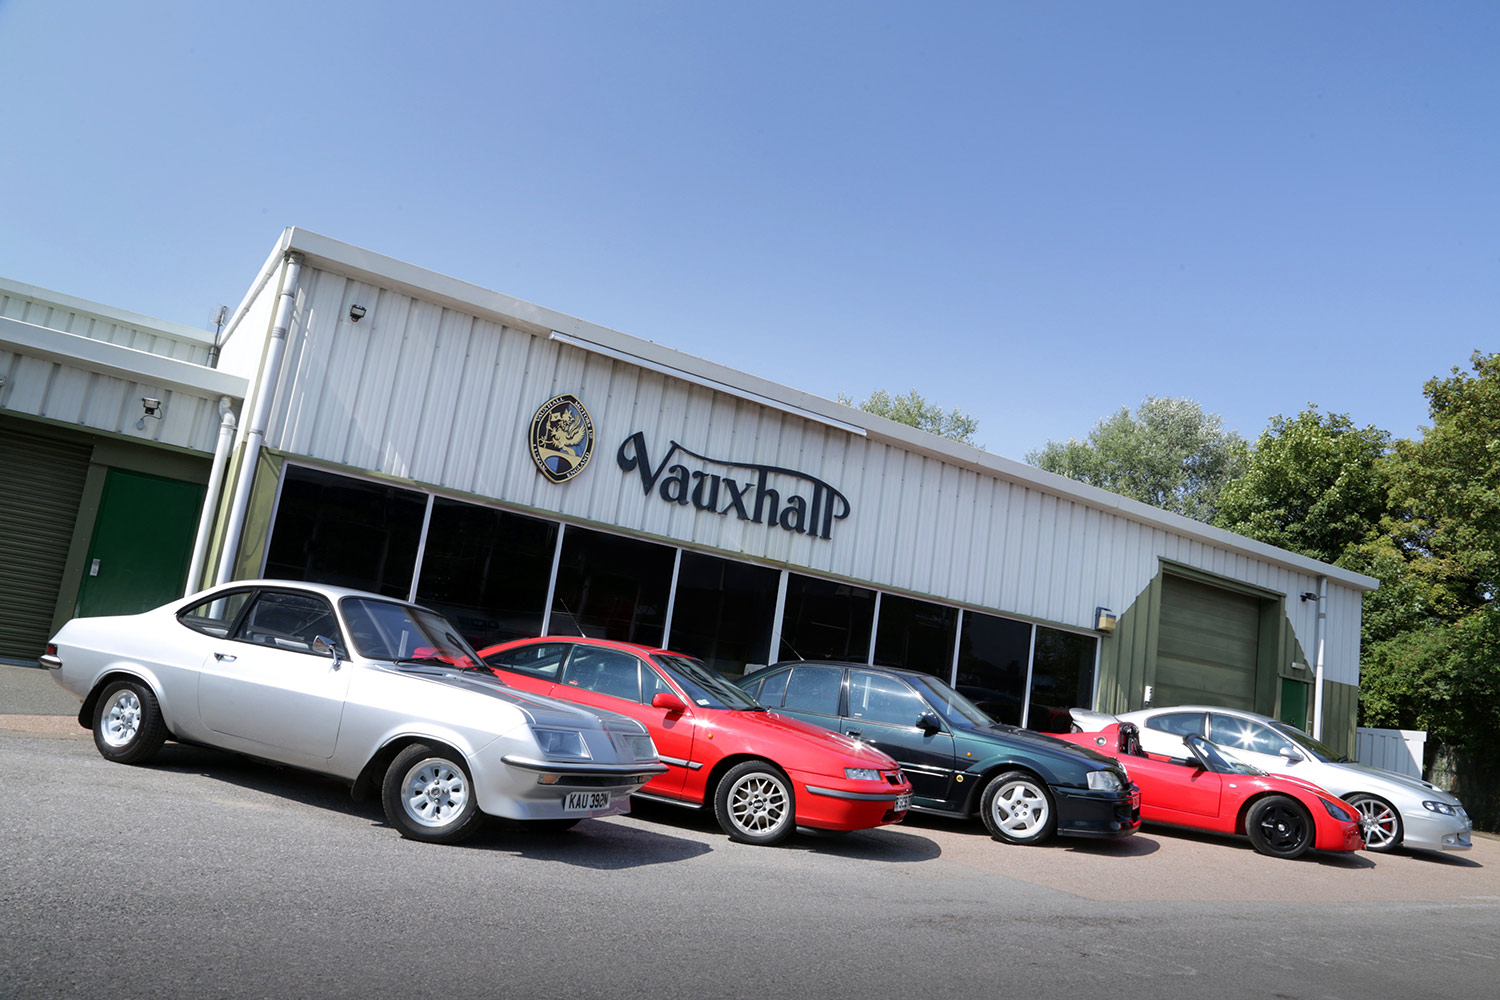 The Vauxhall Heritage Centre will play host to a poignant collection of classics